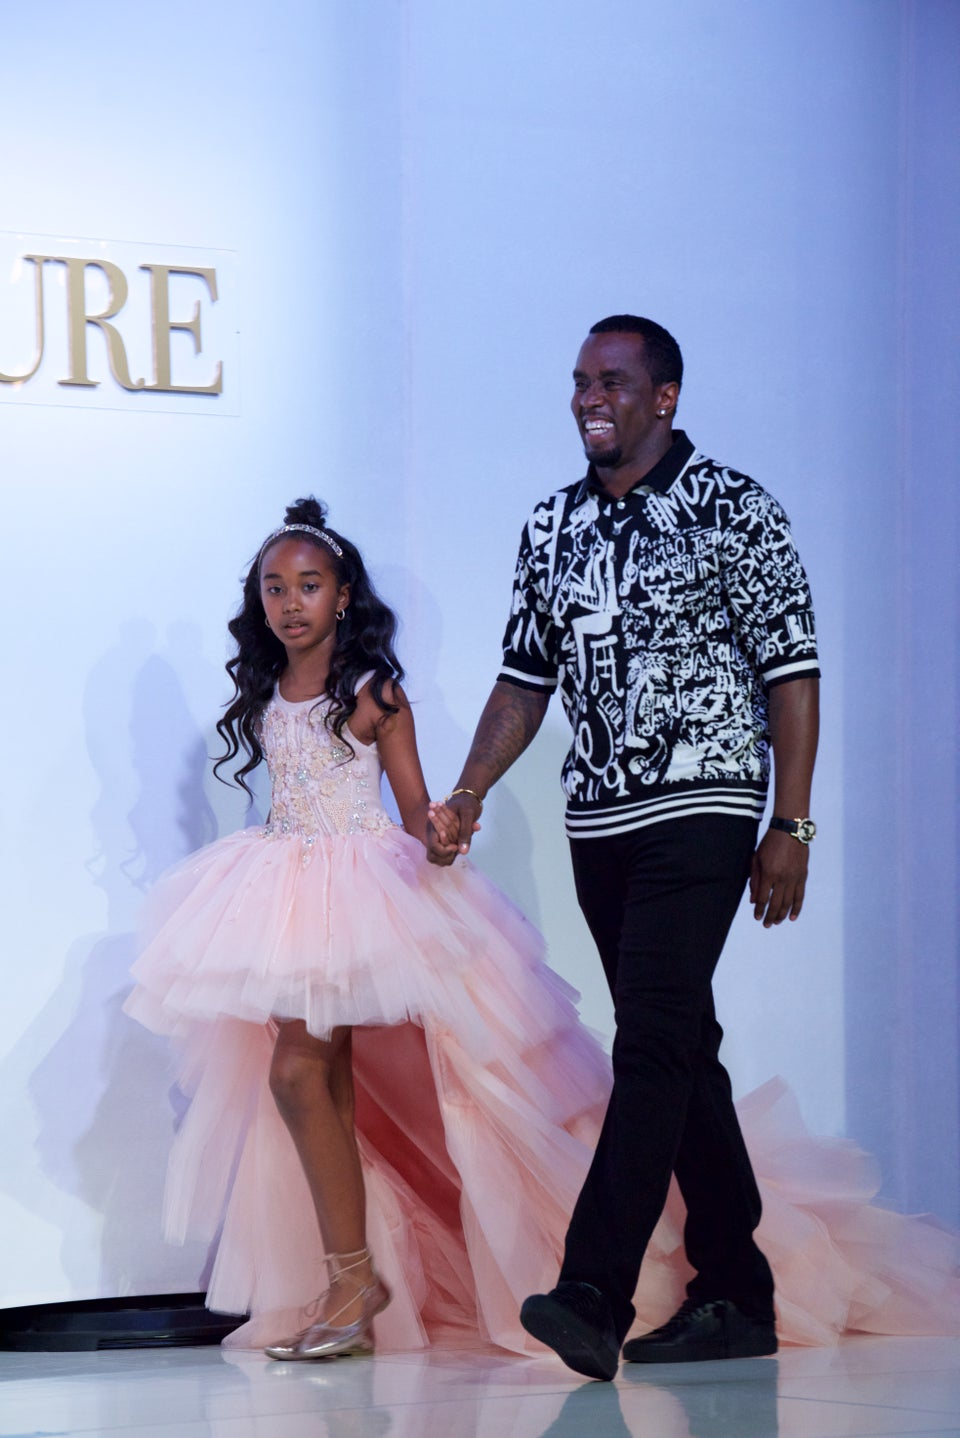 WATCH: Diddy's Christmas Gift For His Daughter Chance Moved Her To Happy Tears